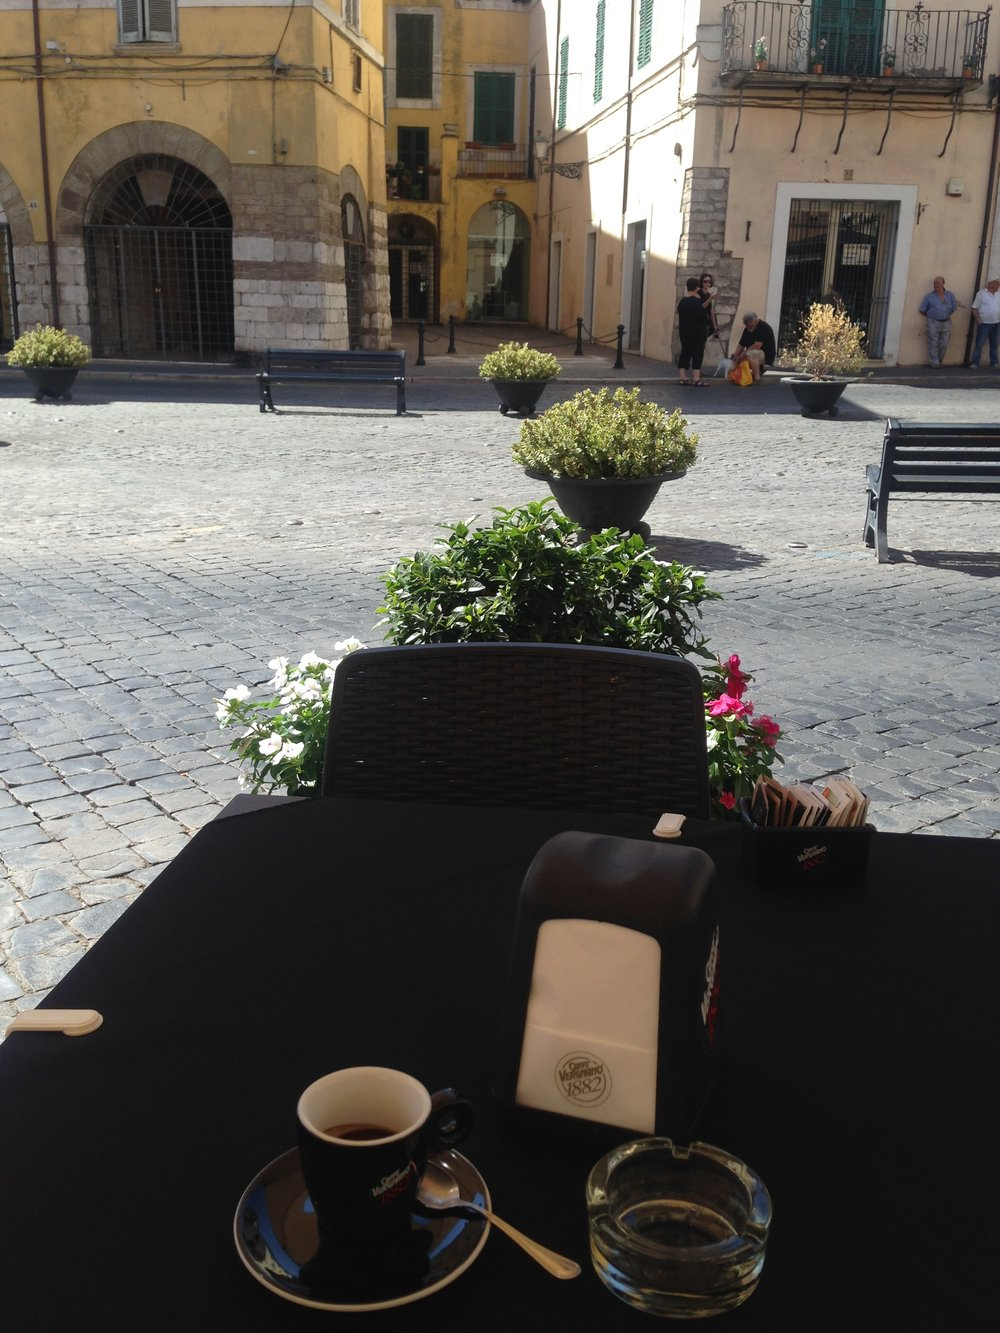 I often had espresso in the Club Cafe, in the Piazza Matteotti in Civita's Centro.  This is where we had art critiques on Saturdays.